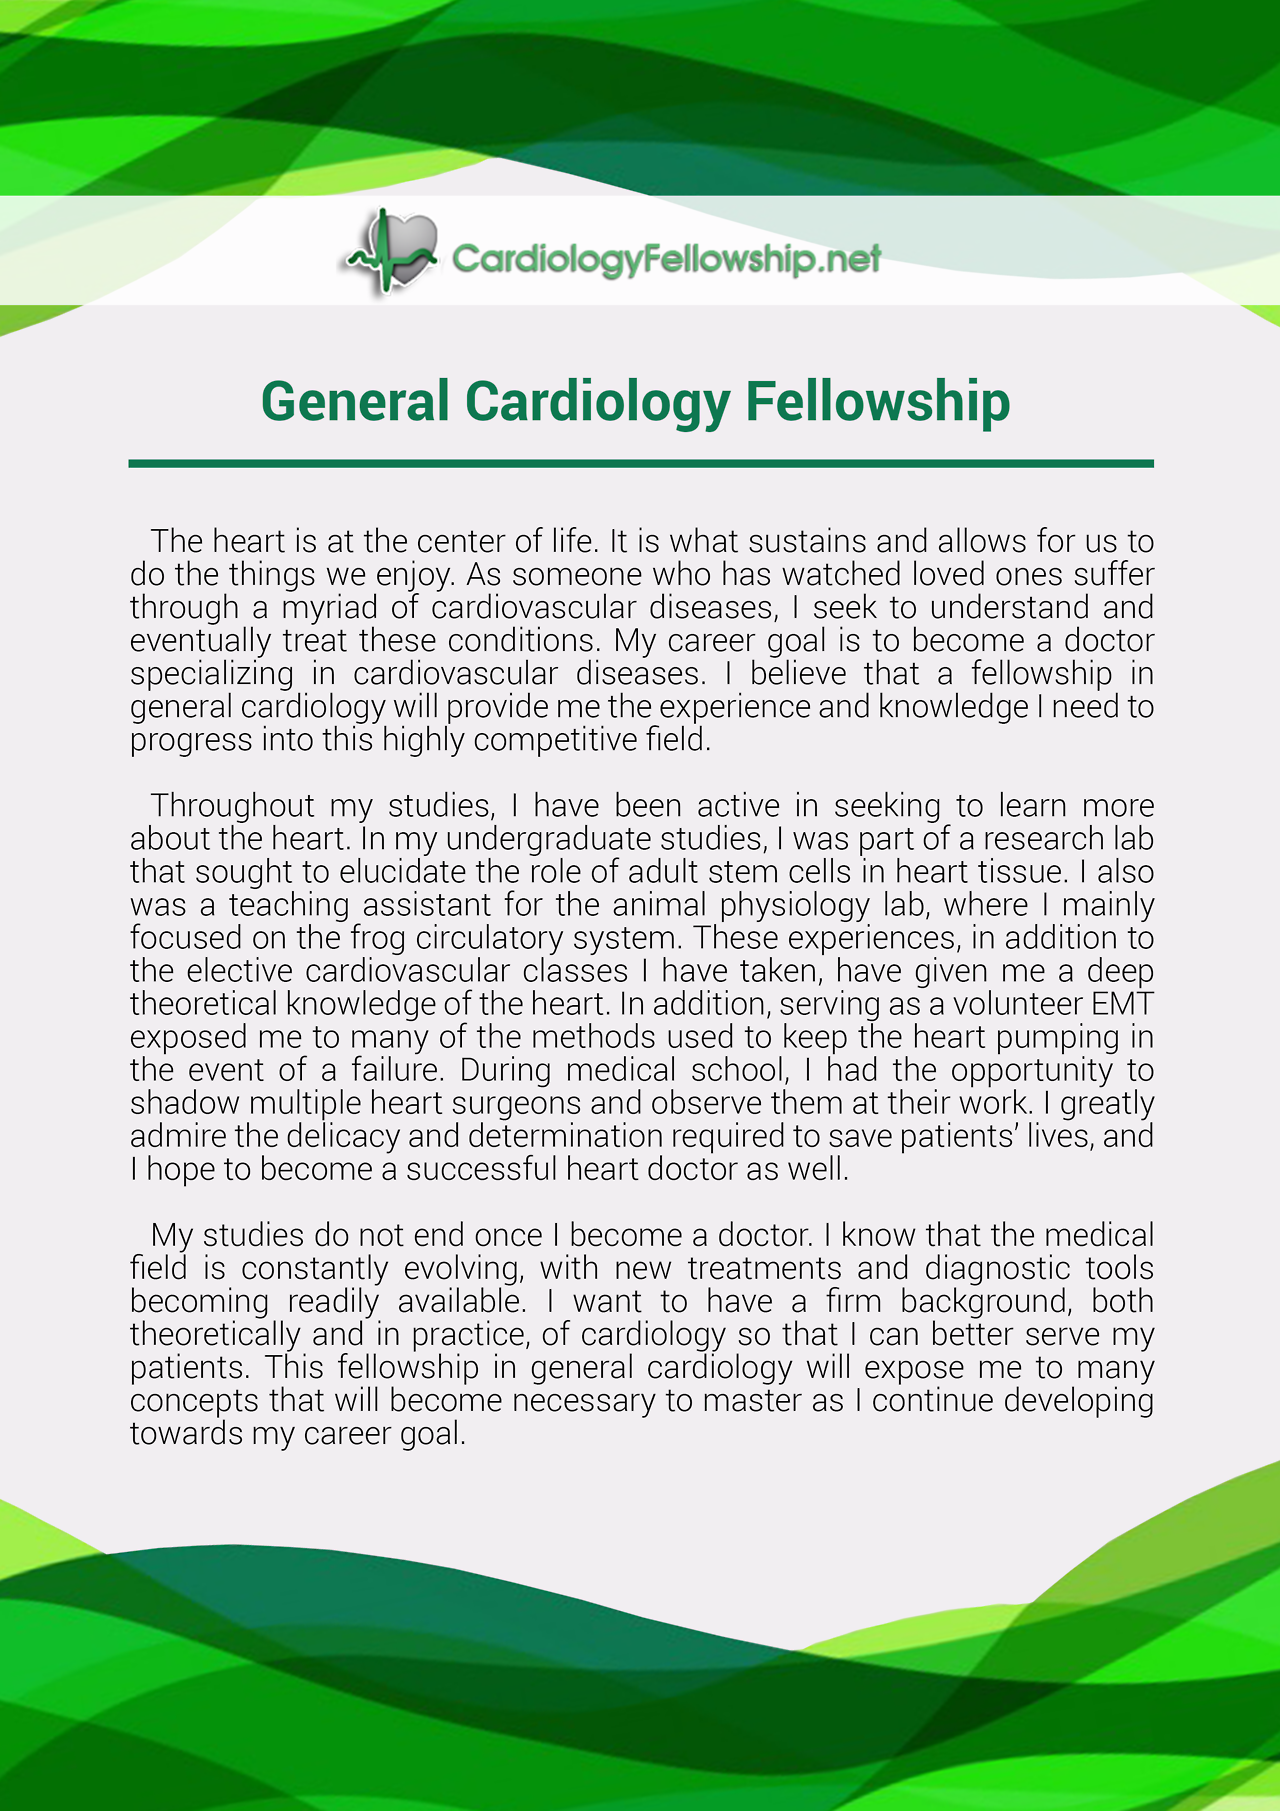 Pin by Cardiology Fellowship PS Samples Canada on General